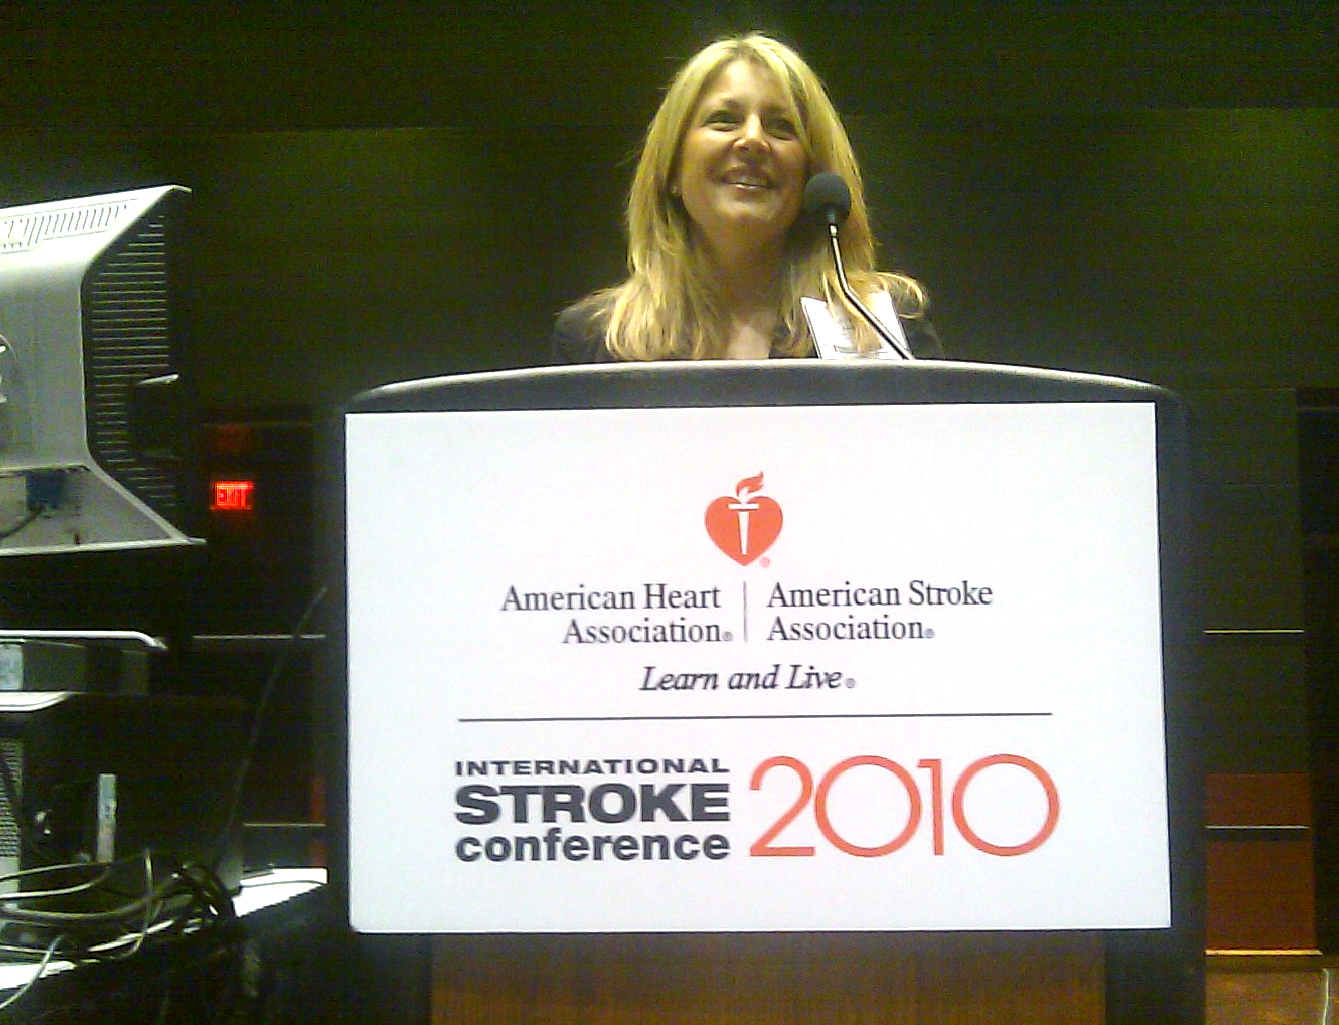 Stroke program coordinator Justine Abram presented original research to an international audience at the nursing symposium during the International Stroke Conference in San Antonio. Her research concluded improved stroke patient care through the implementation of early response notification of impending stroke patients to SUF.